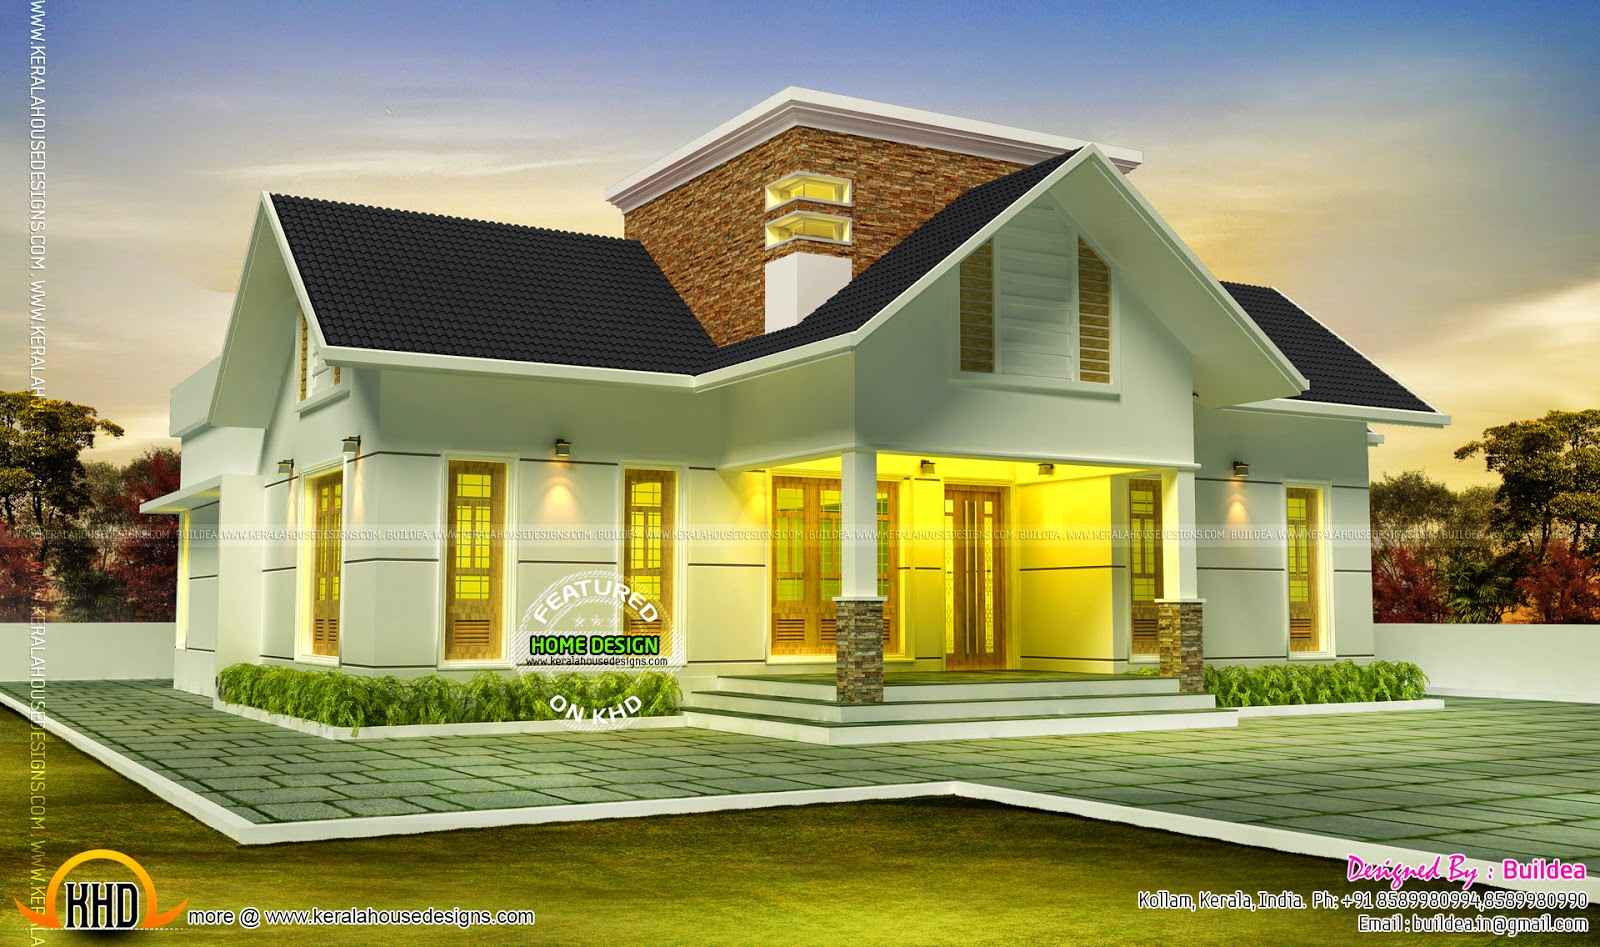 Very beautiful house kerala home design and floor plans for Beautiful house images